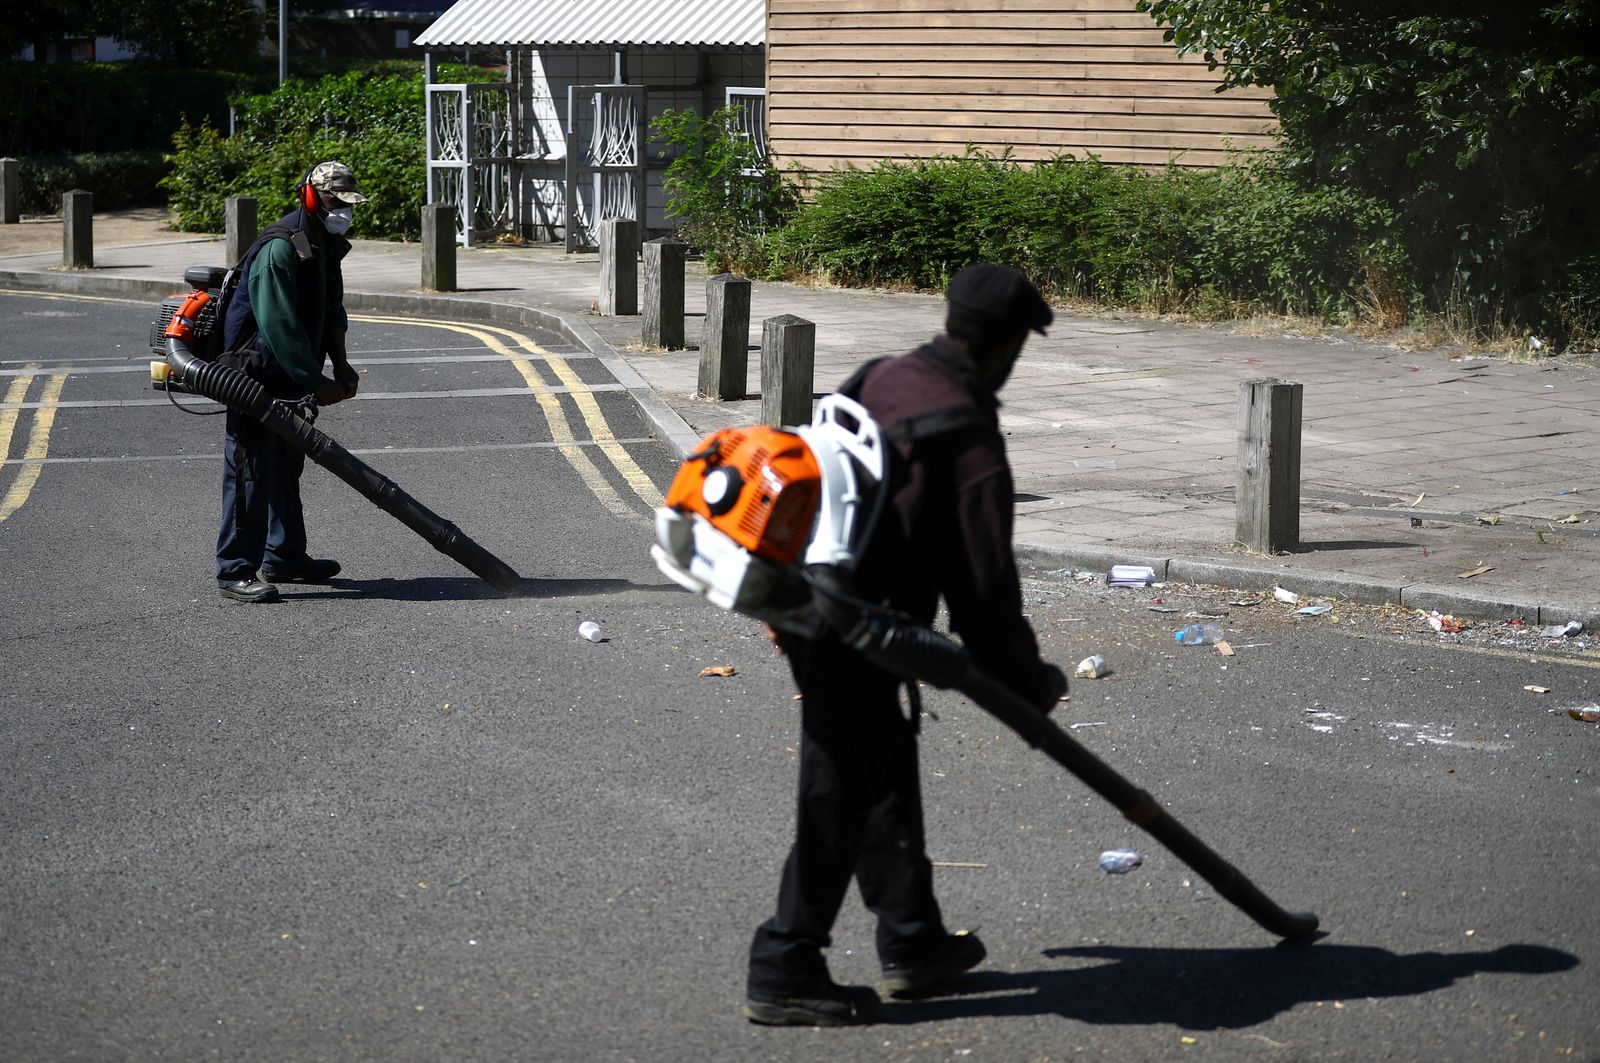 Workers clean rubbish from the street at Angell Town estate in Brixton